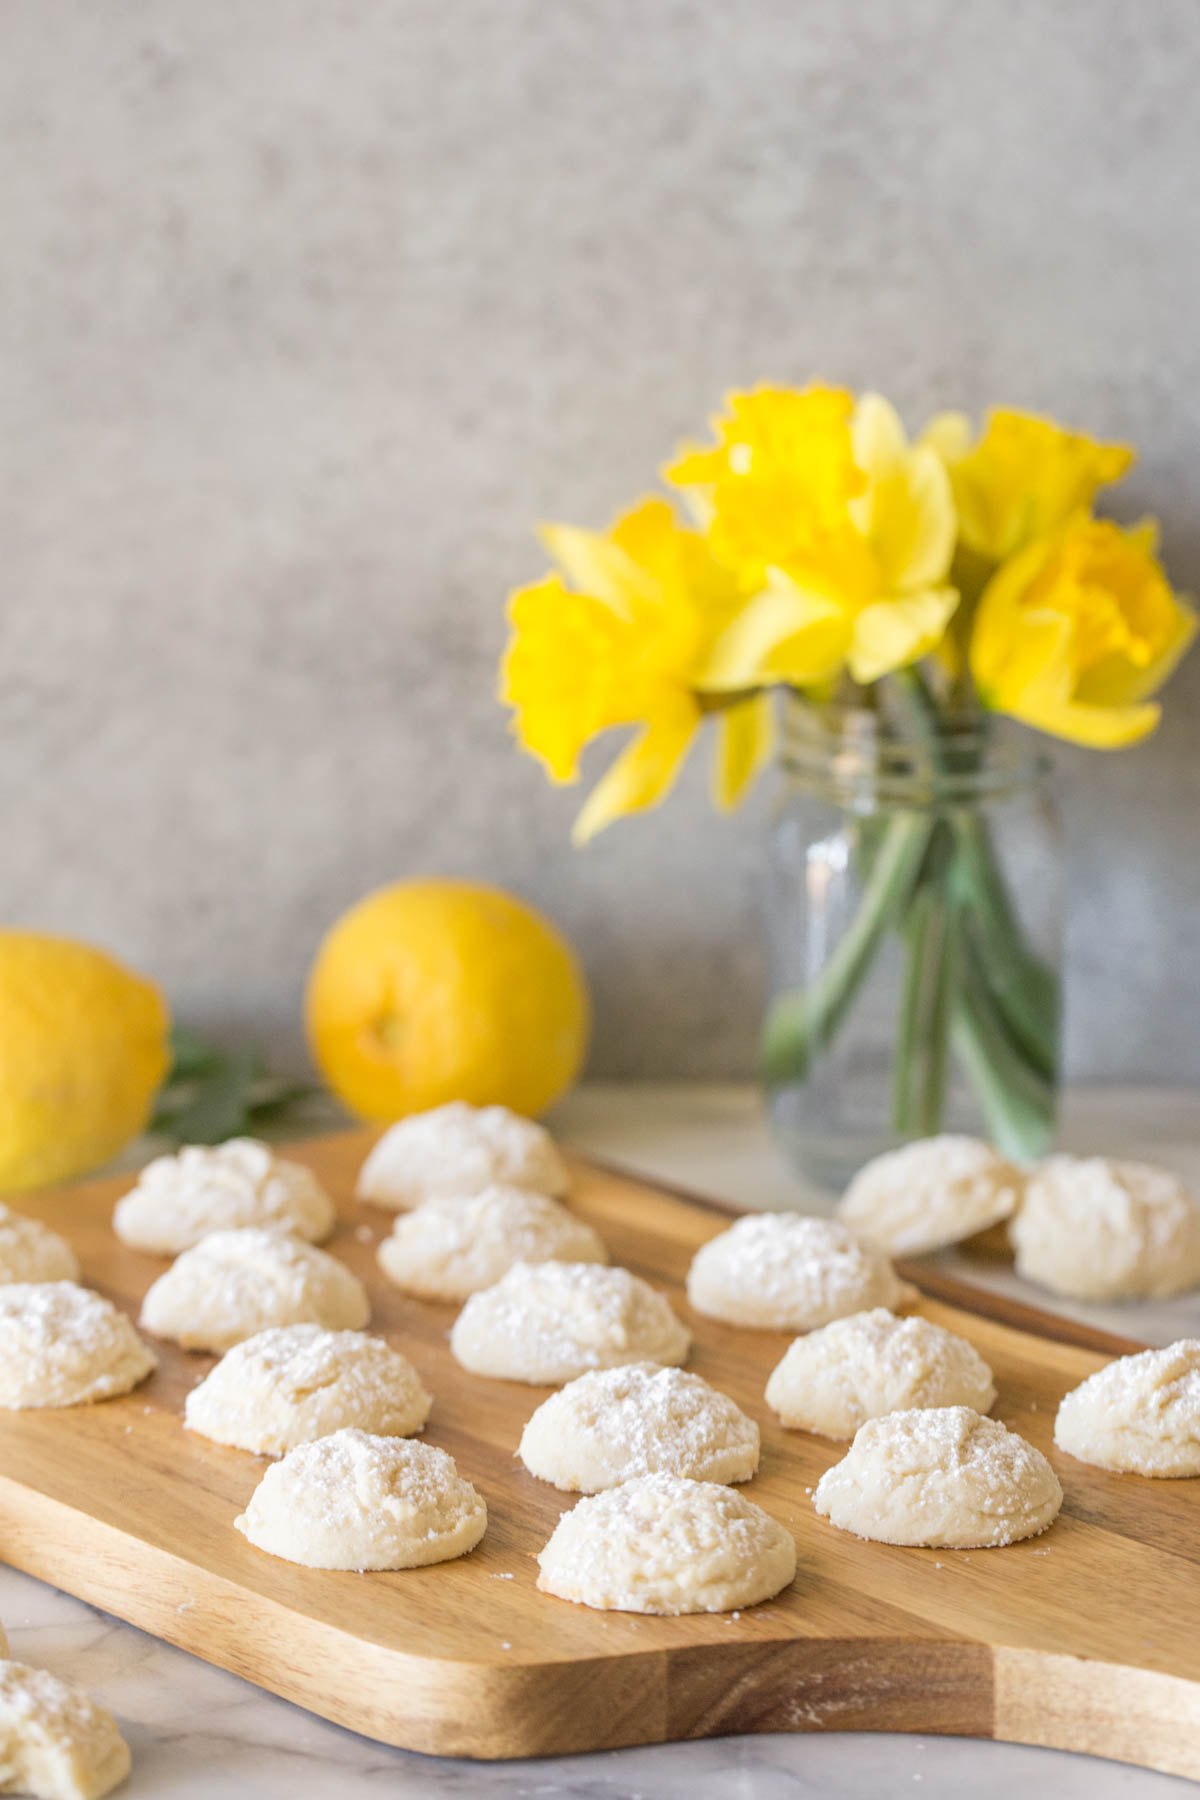 Lemon Cookies on a wooden cutting board with yellow daffodils in the background.